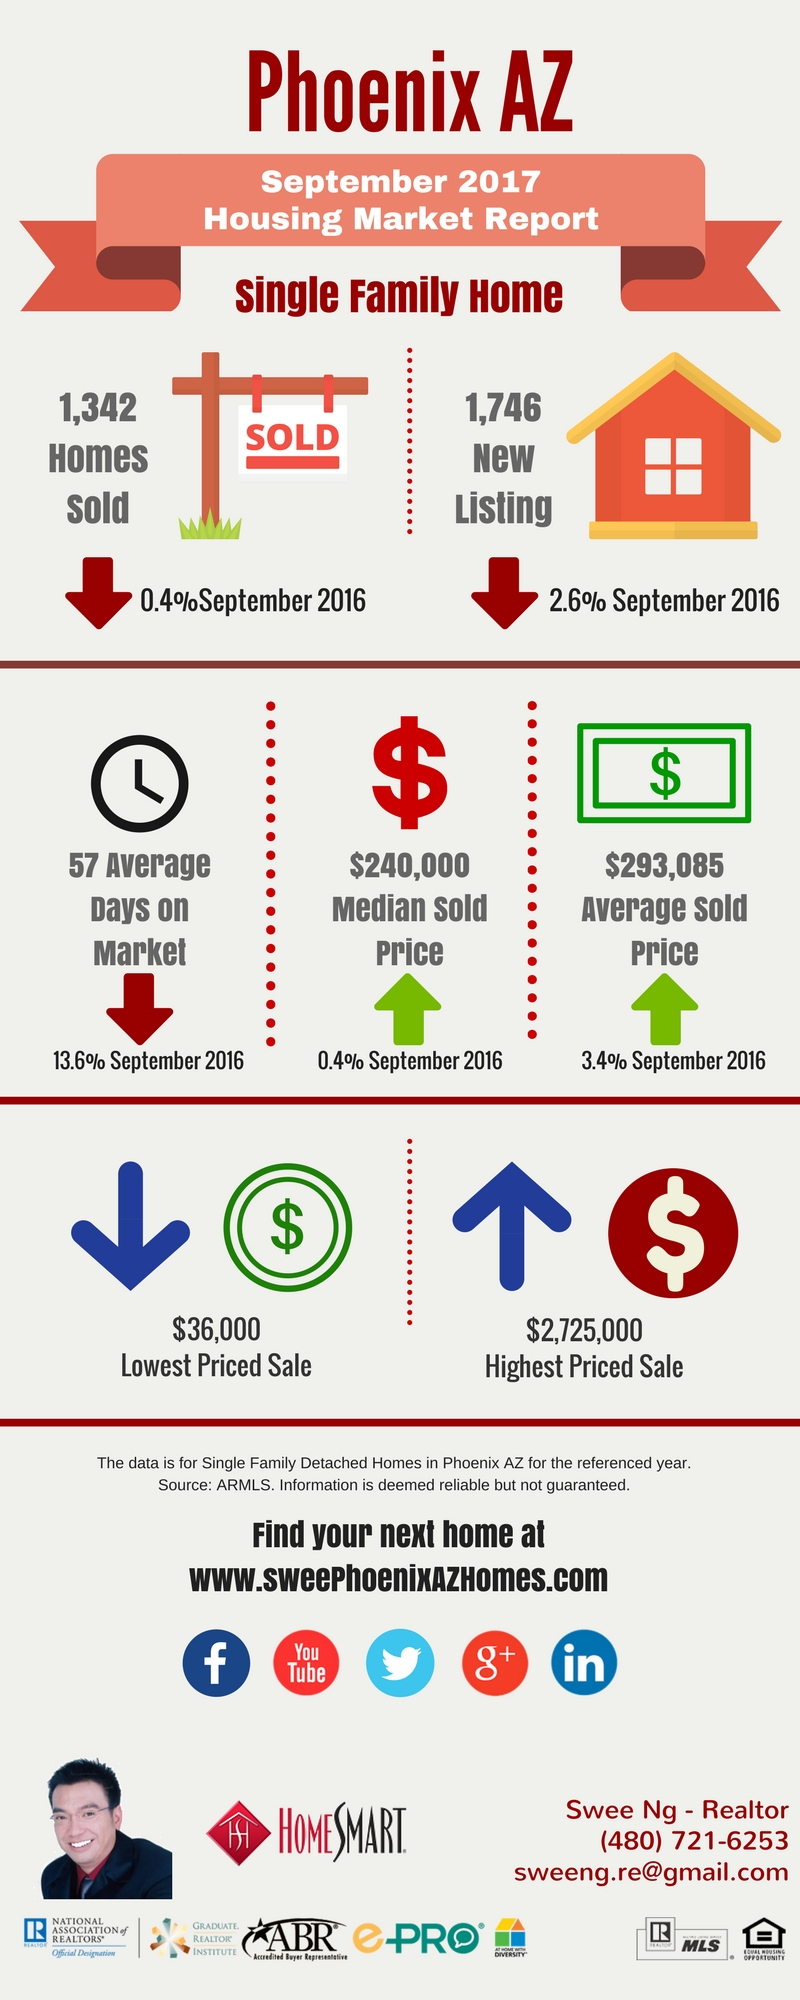 Phoenix Housing Market Update September 2017 and House Value by Swee Ng